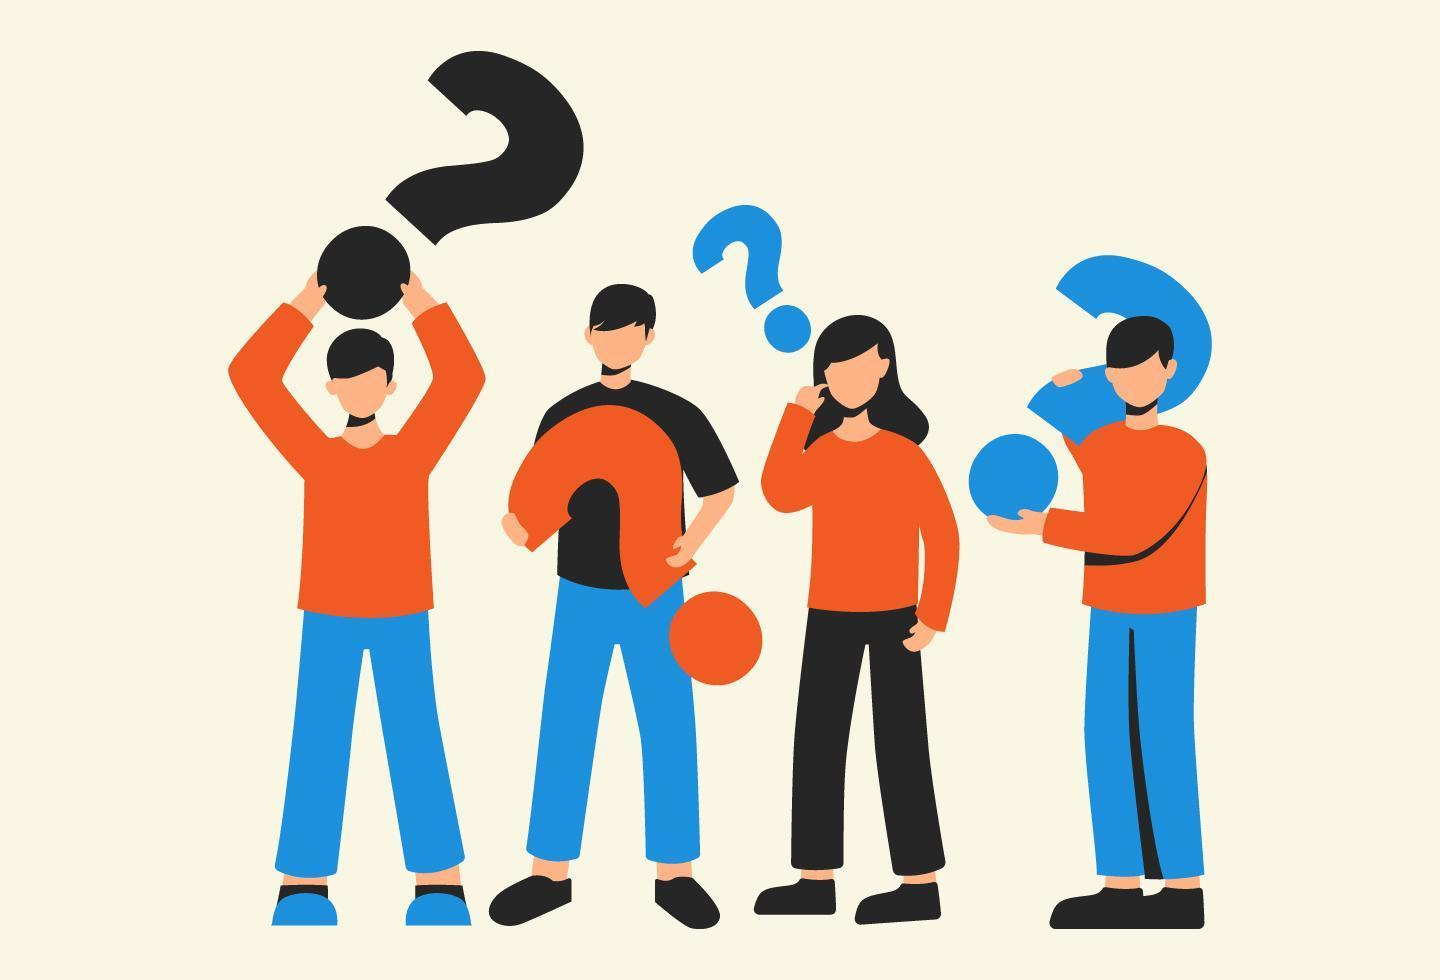 Group of people holding question mark icons vector